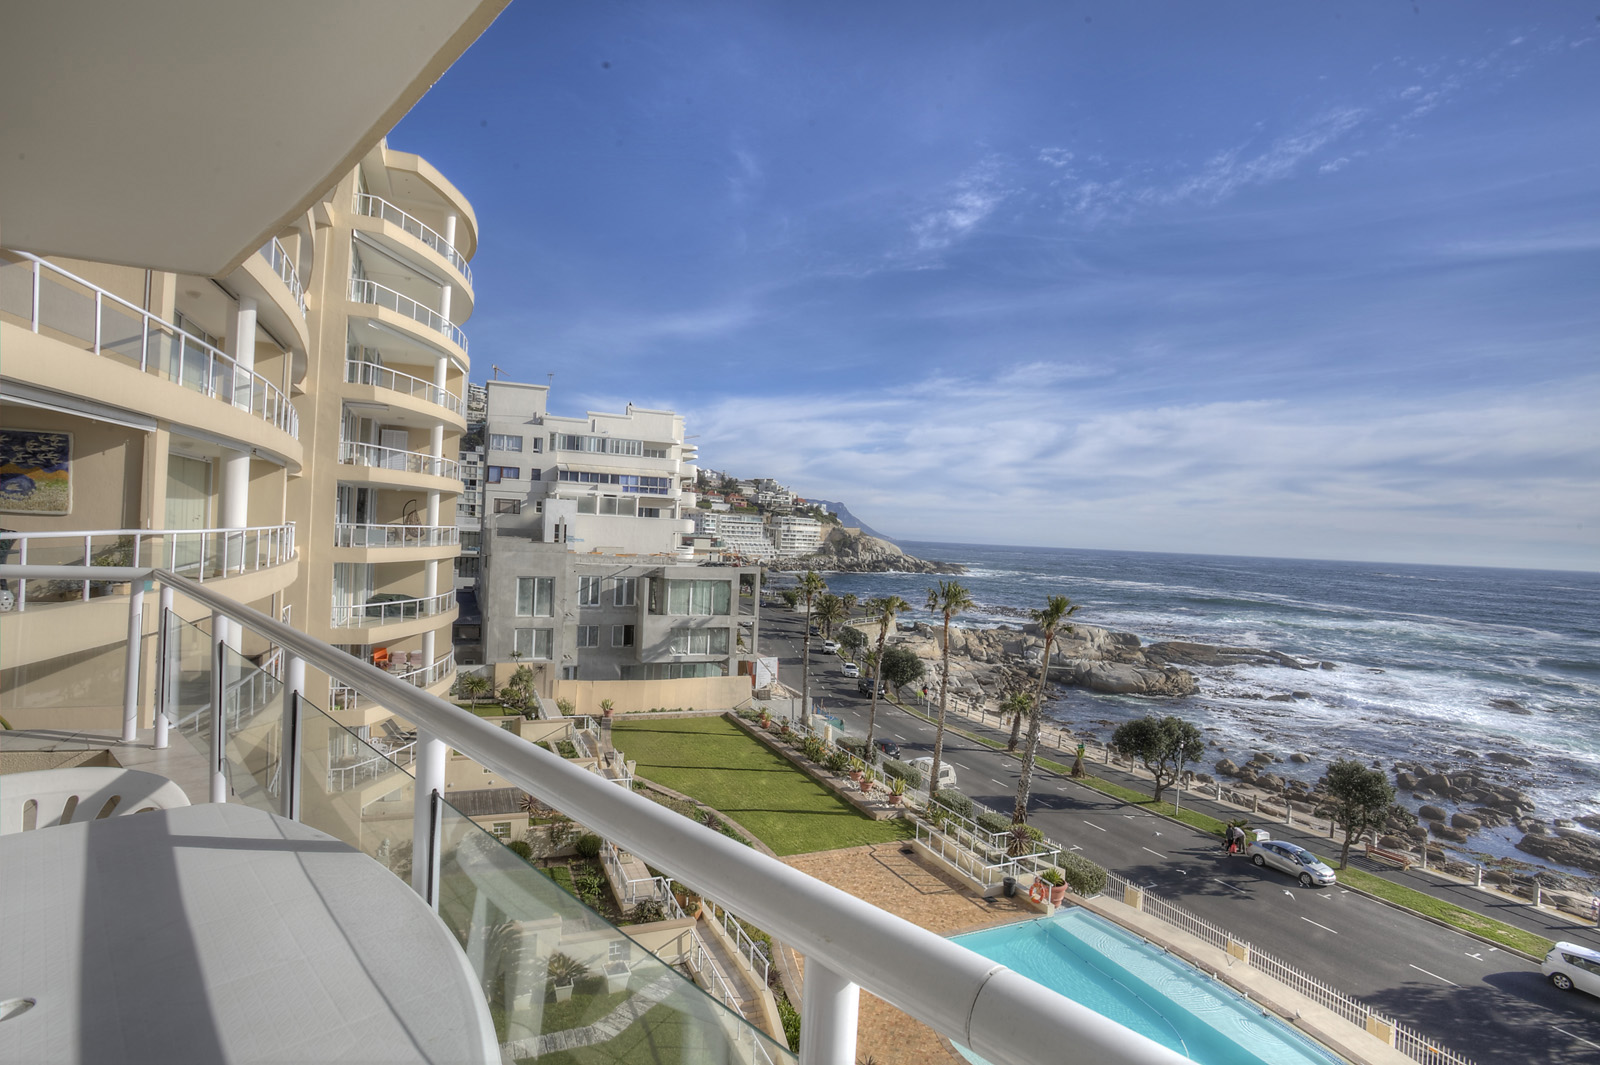 504 Bantry Place (Bantry Bay, 1 Bedrooms)